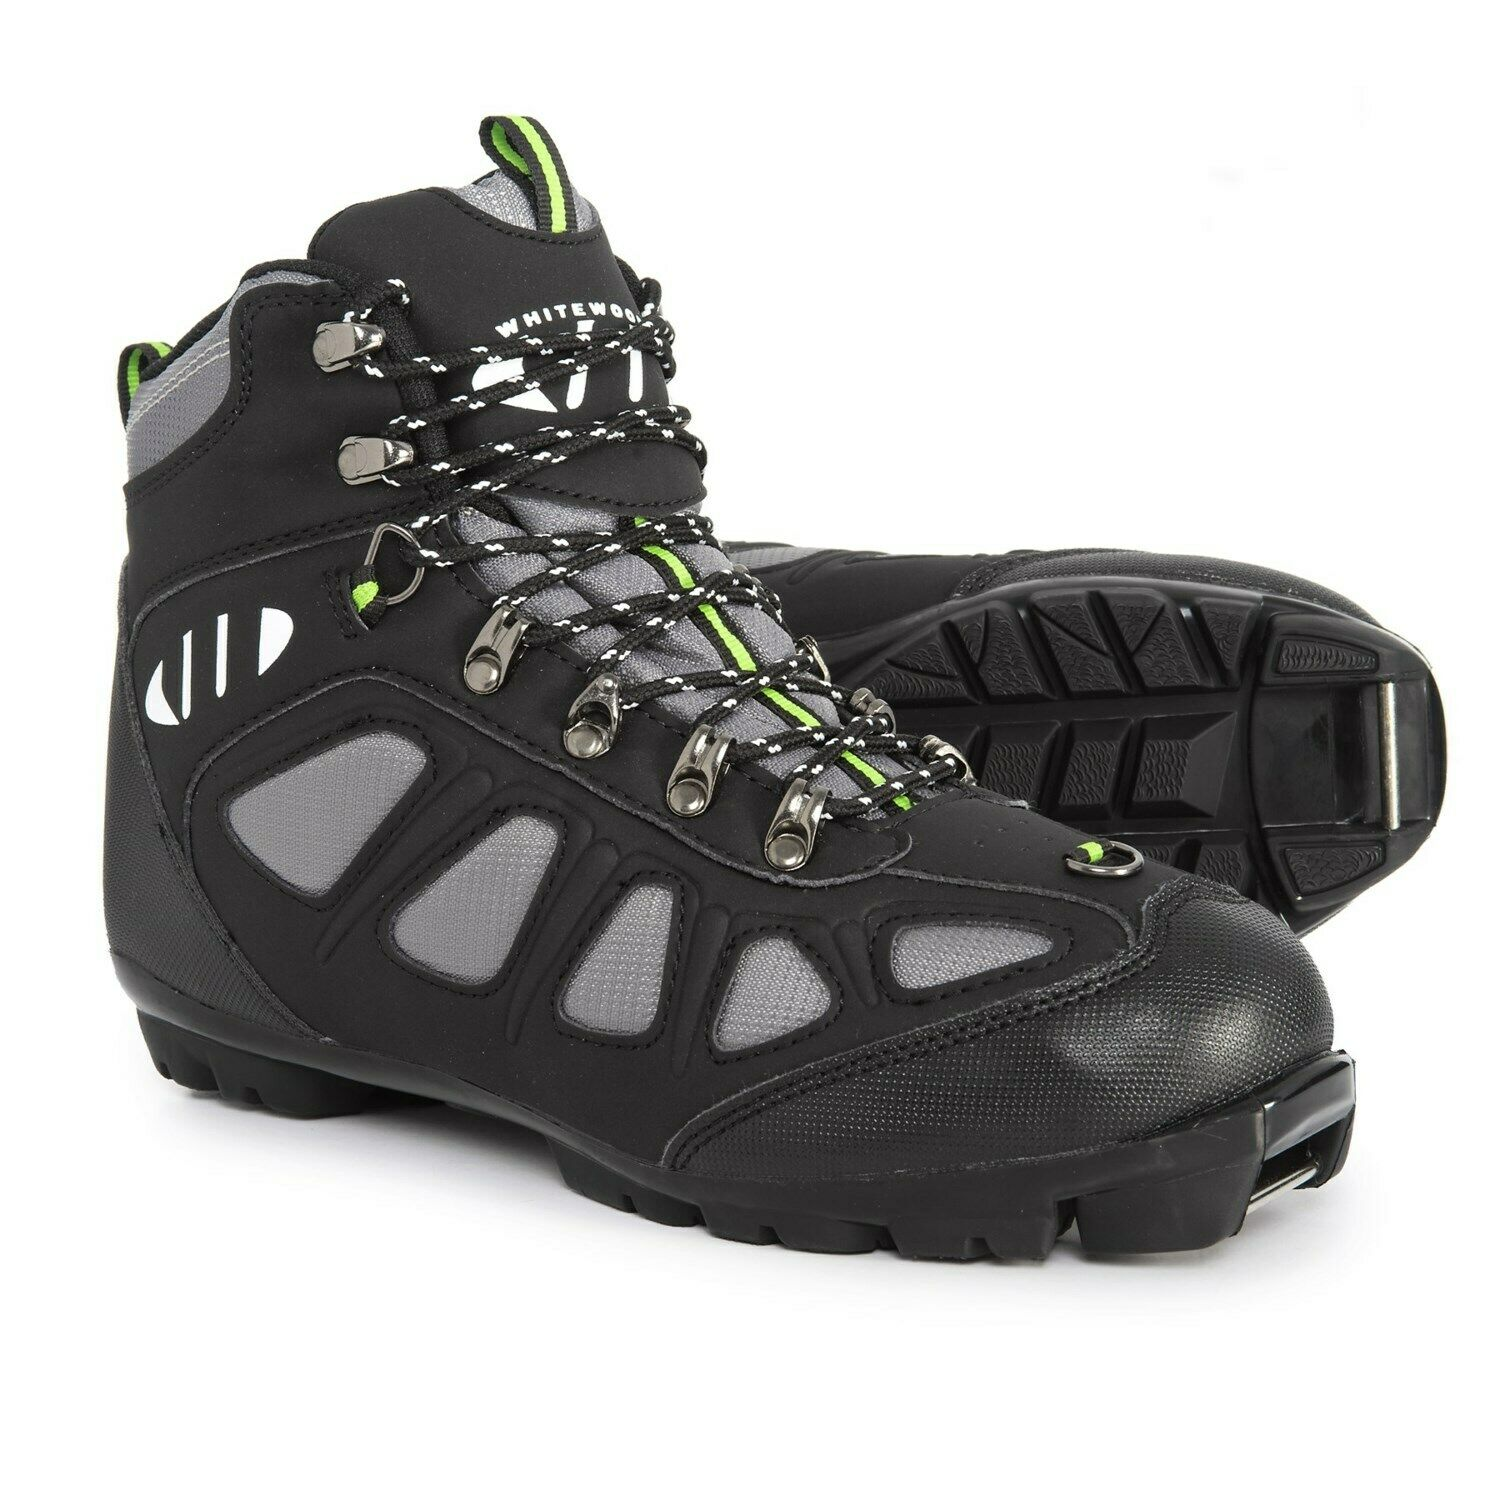 Whitewoods 302 boot XC NNN Size  34 (2M 3W 33EUR) boots cross country ski New  online-shop